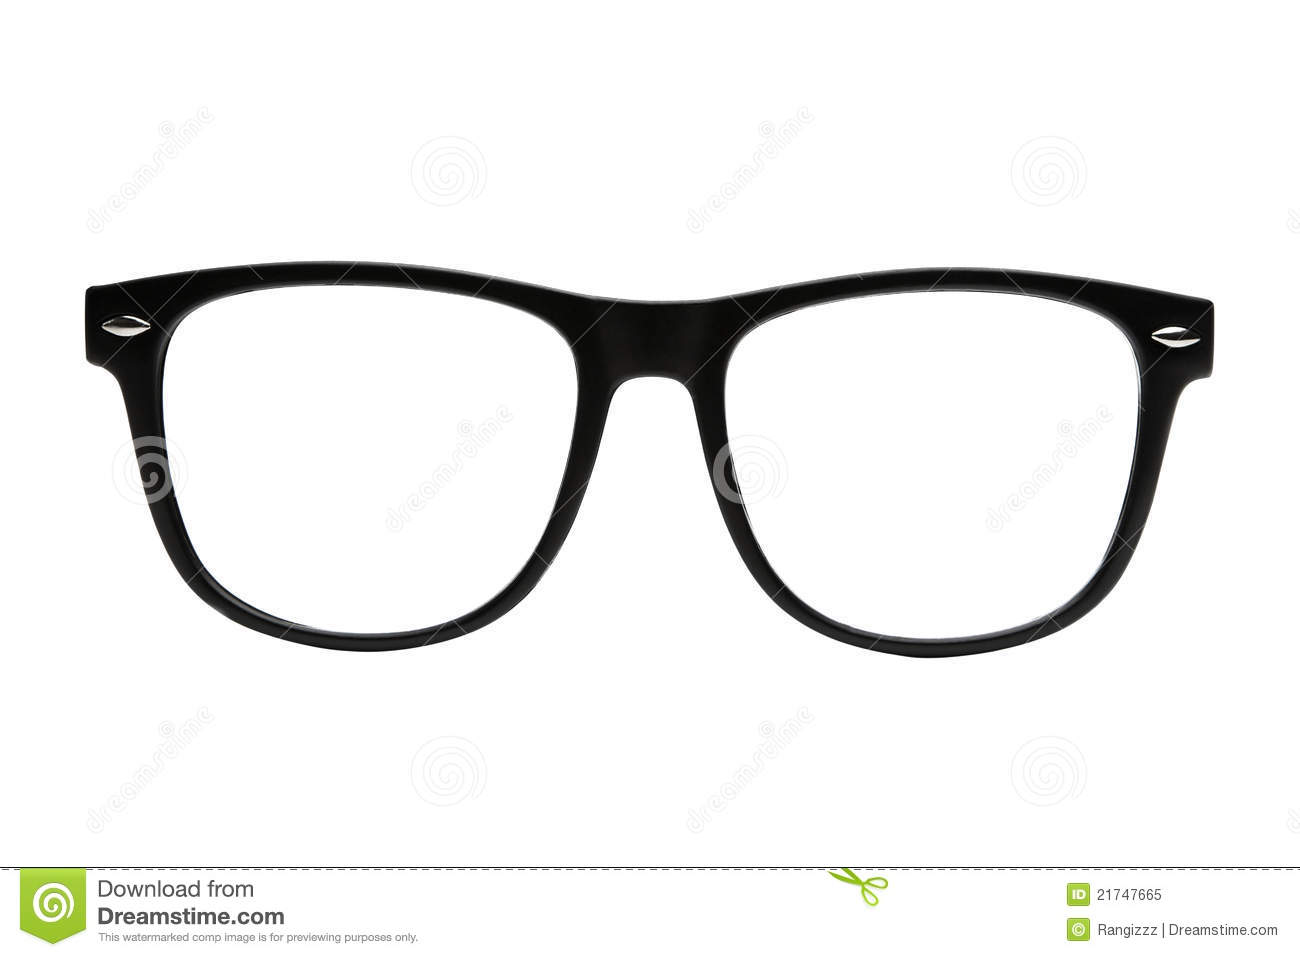 Geek Glasses - ClipArt Best